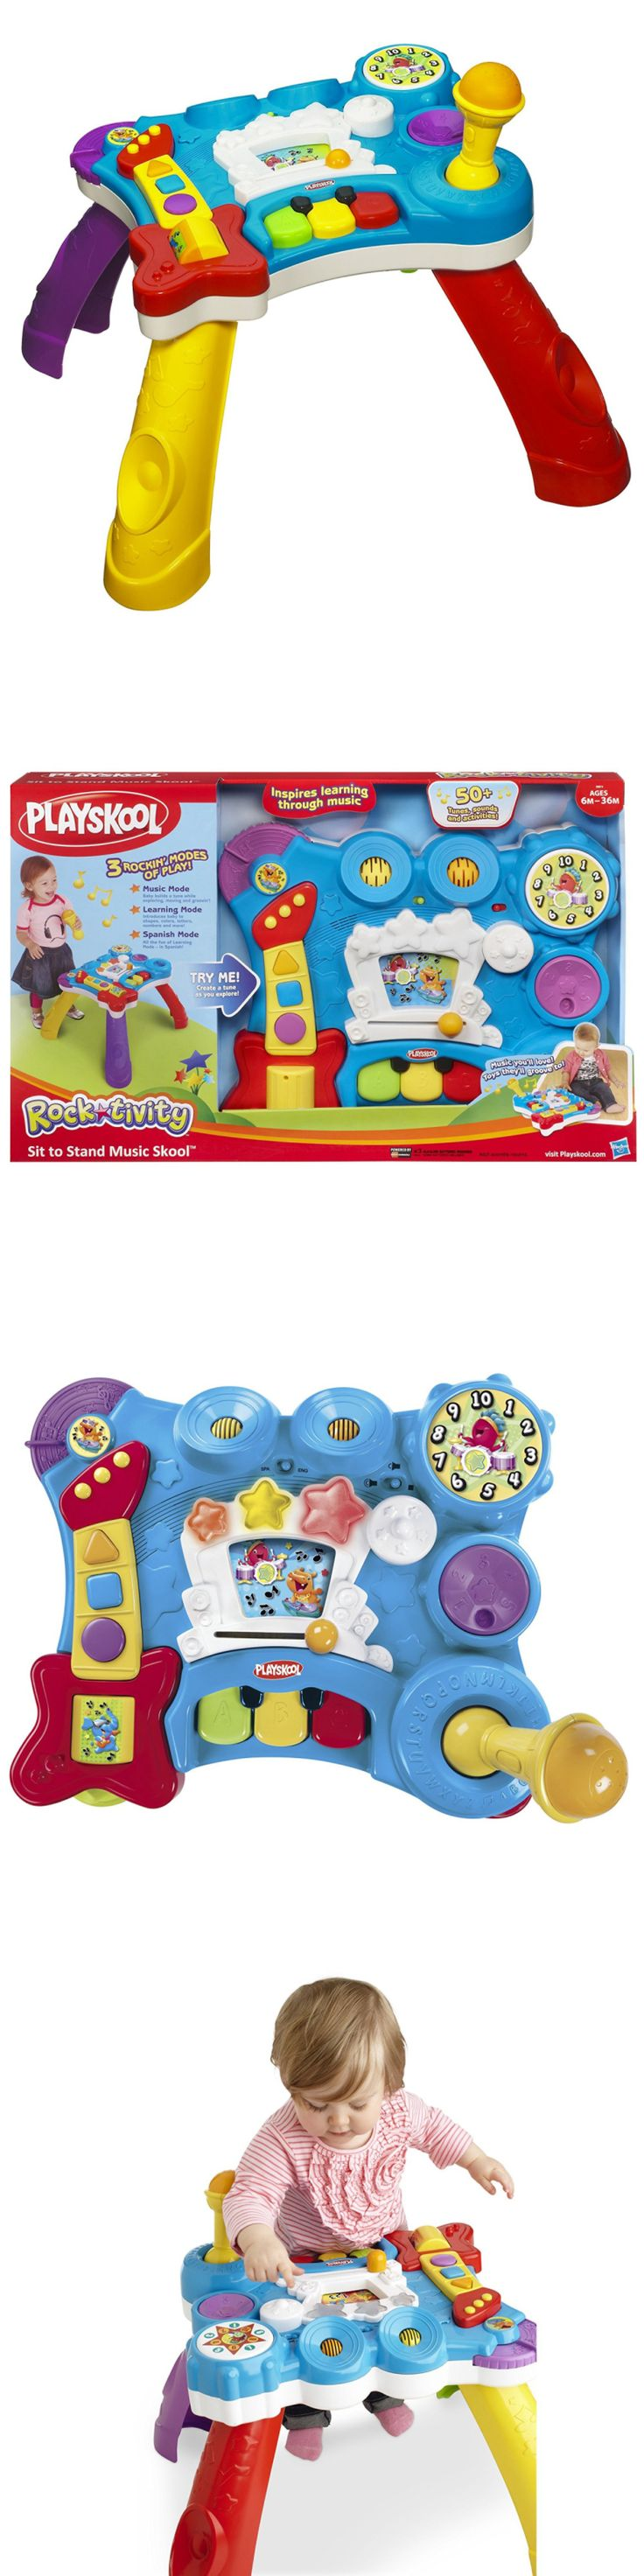 Playskool 2576: Playskool Rocktivity Sit To Stand Music Skool Toy -> BUY IT NOW ONLY: $67.99 on eBay!